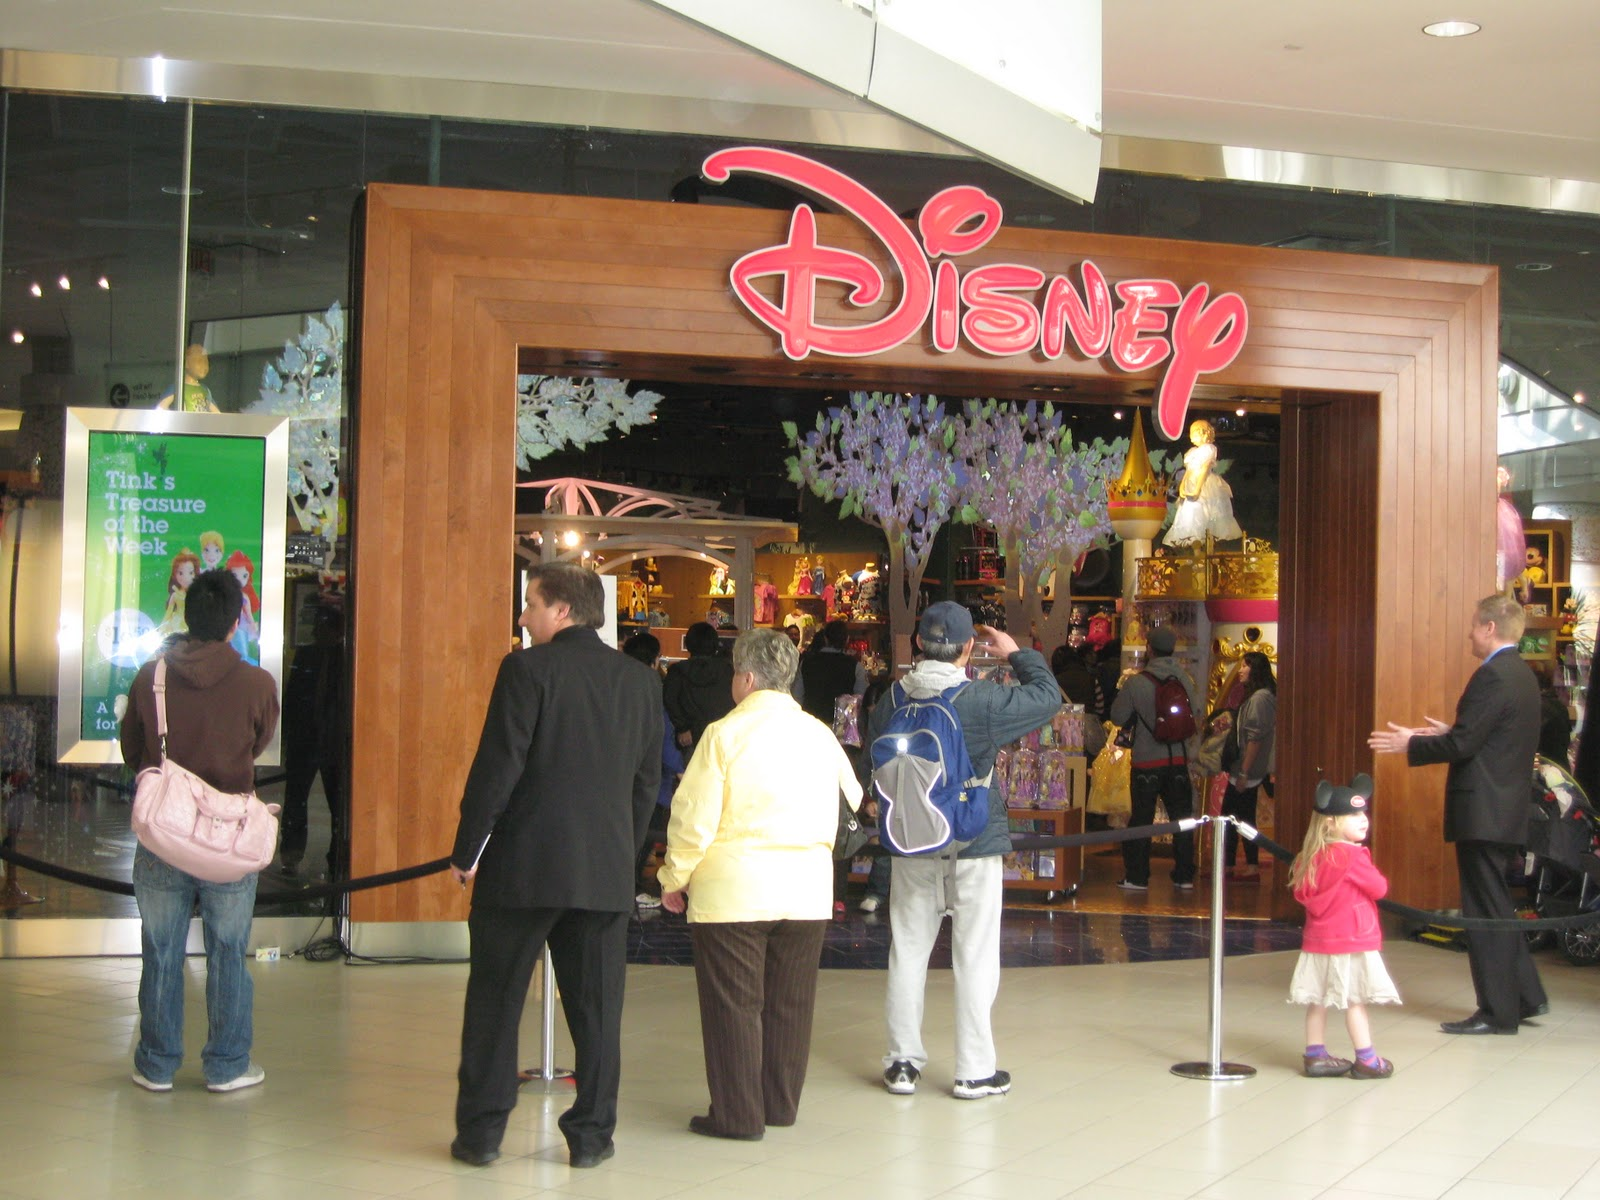 How to use a Disney Store discount code Redeeming a Disney Store voucher code couldn't be any easier! Select the code you would like to use and you'll be directed to the official Disney Store website. Add all magical goods to your bag and proceed to checkout. Underneath your purchases, you'll see